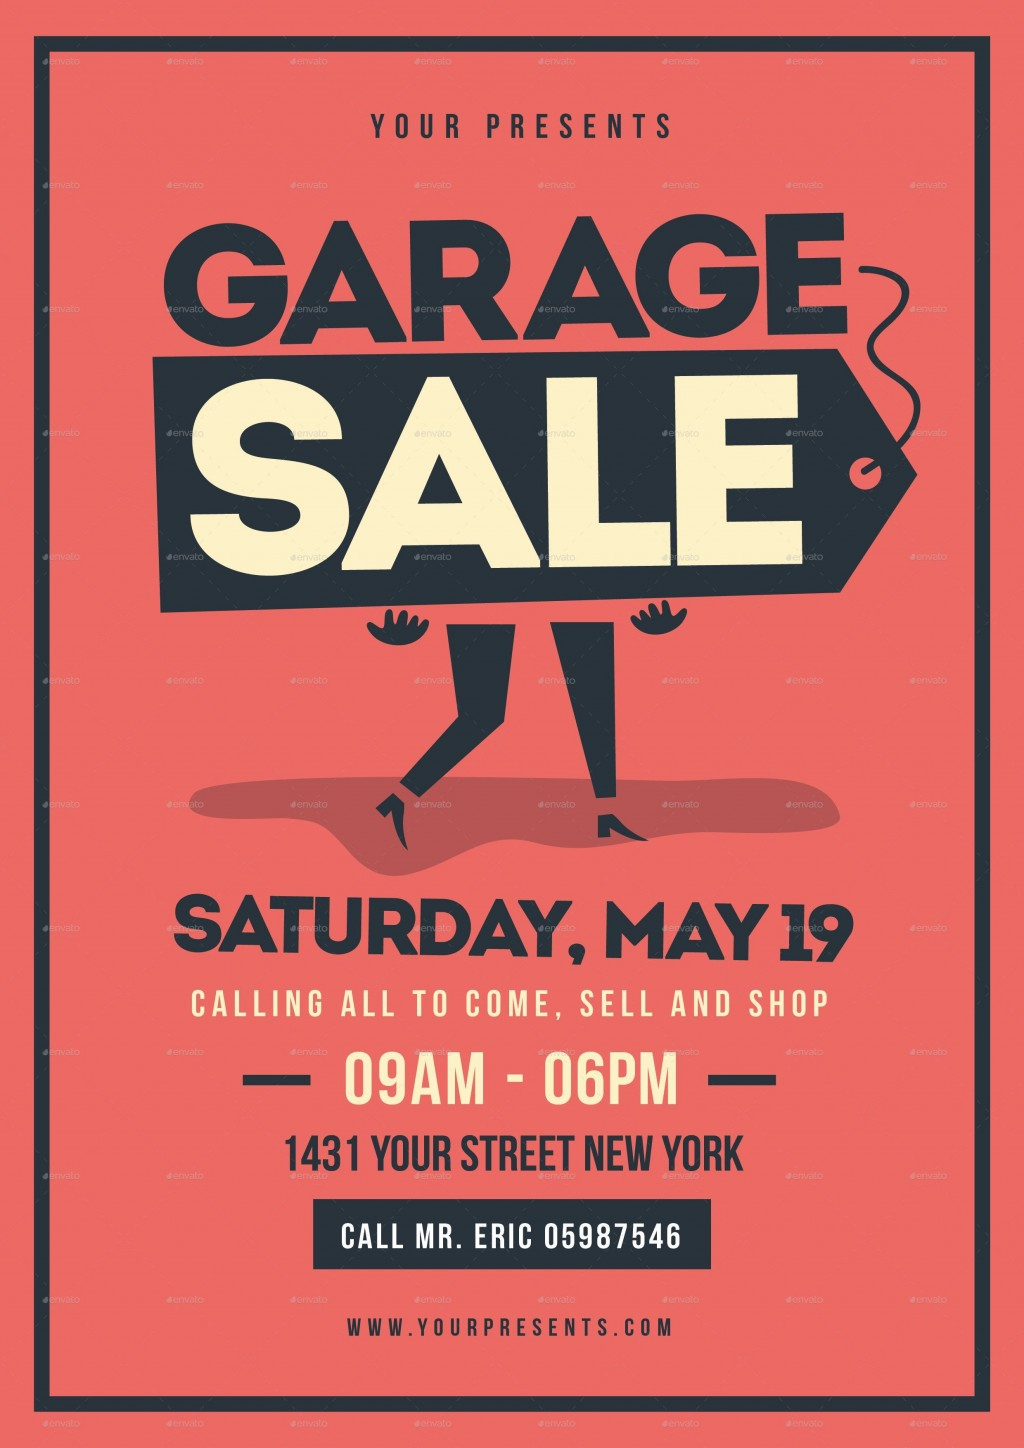 003 Stupendou Garage Sale Sign Template Image  Flyer Microsoft Word Community Yard Free RummageLarge